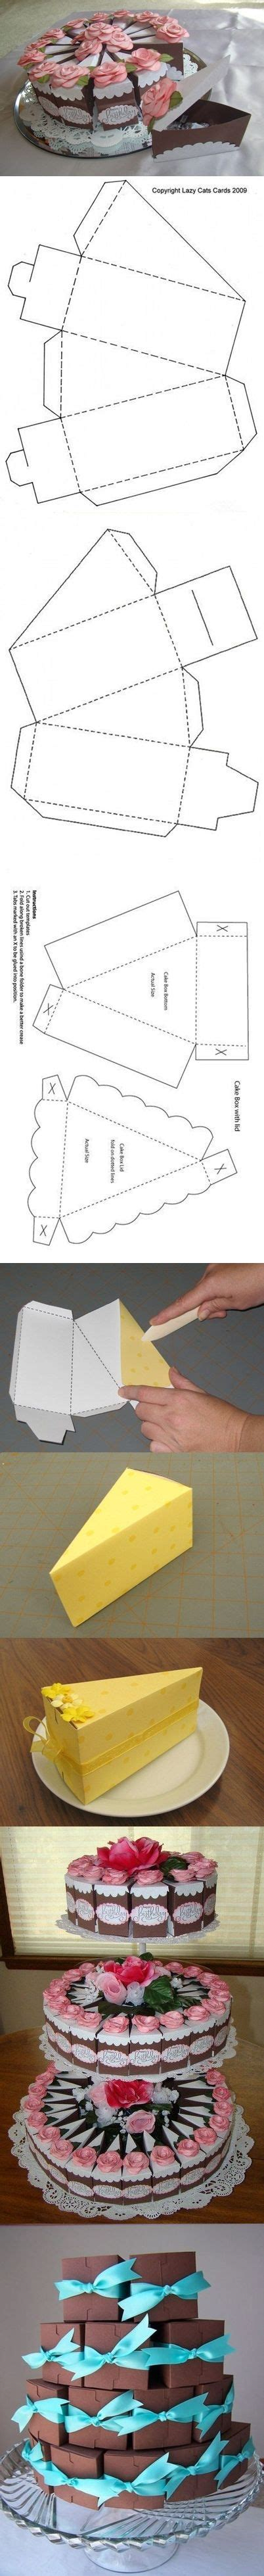 How To Make Handmade Sheet At Home - maxresdefault diy handmade paper gift boxes using only one